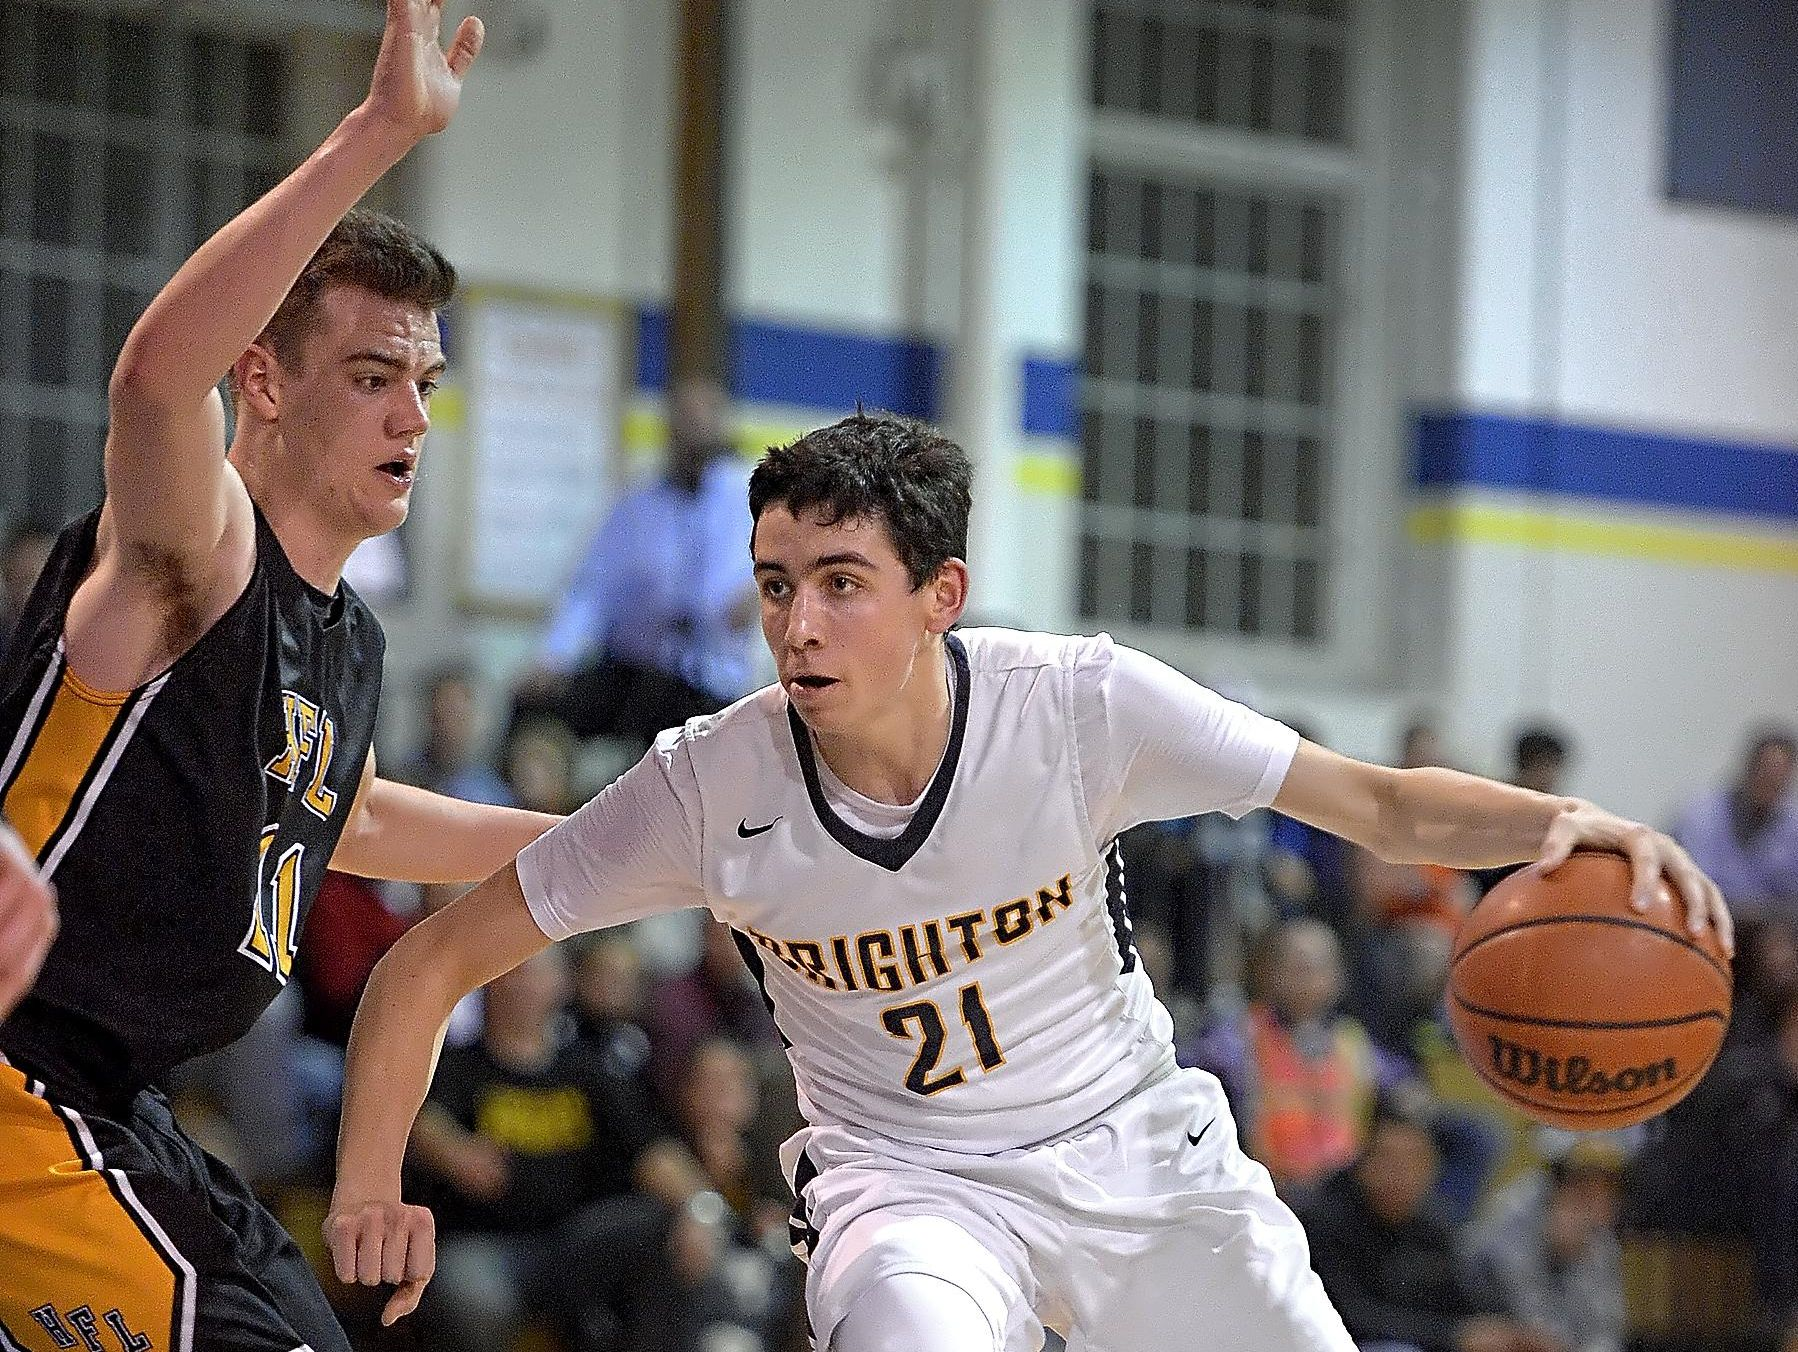 Brighton's Isaac Nelson, right, shields the ball from Honeoye Falls-Lima's Josh D'Agostino on Feb. 3, 2016.